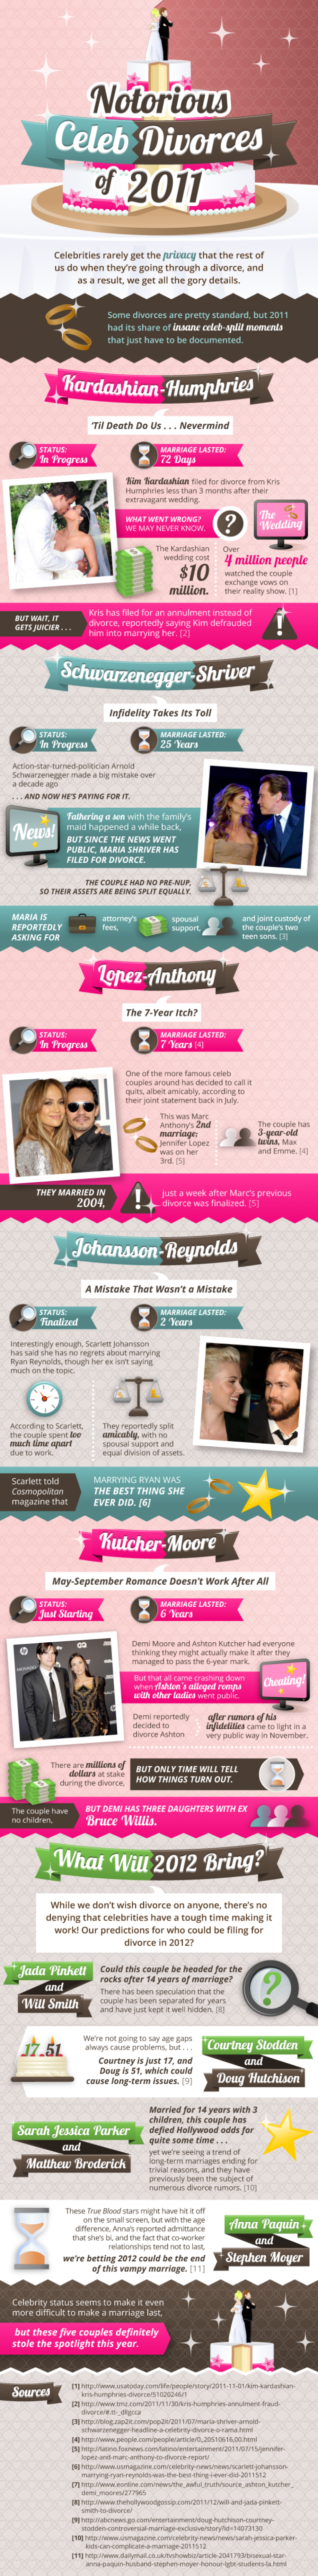 Notorious Celeb Divorces of 2011